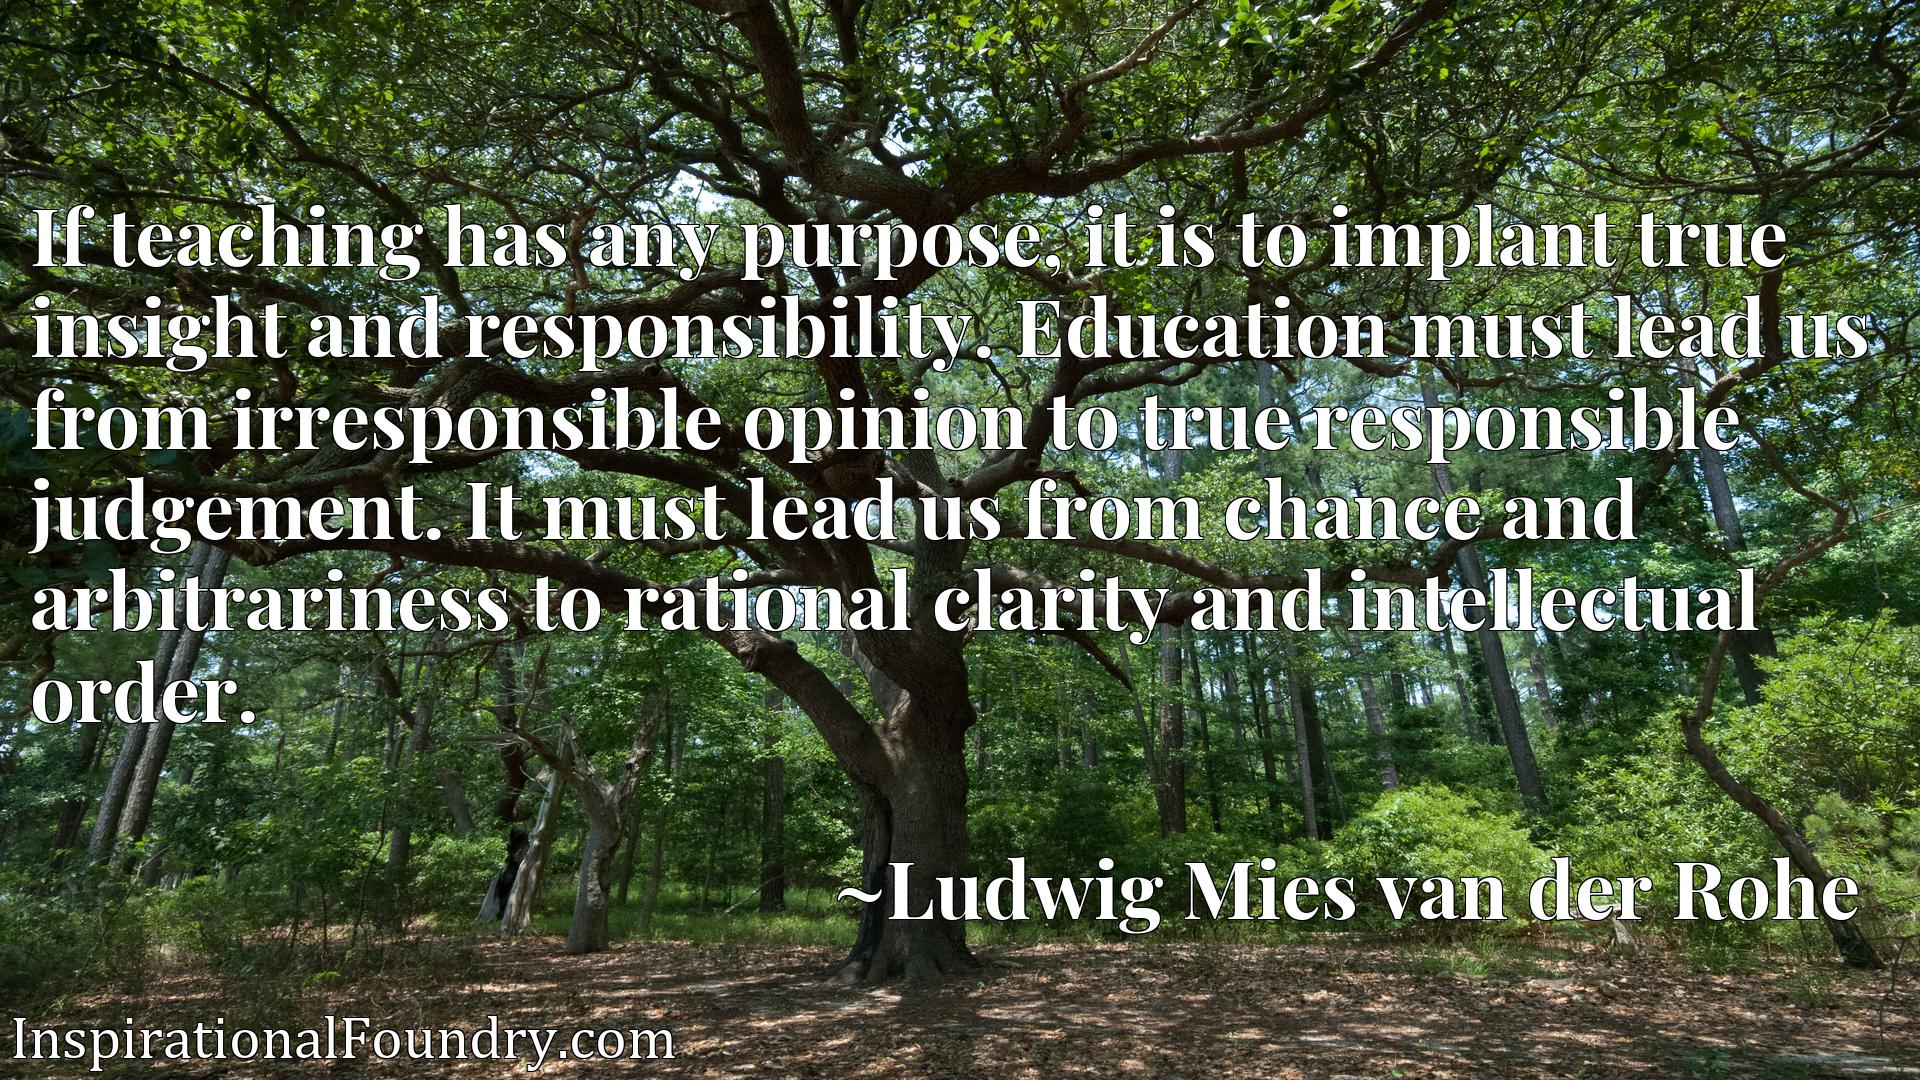 If teaching has any purpose, it is to implant true insight and responsibility. Education must lead us from irresponsible opinion to true responsible judgement. It must lead us from chance and arbitrariness to rational clarity and intellectual order.